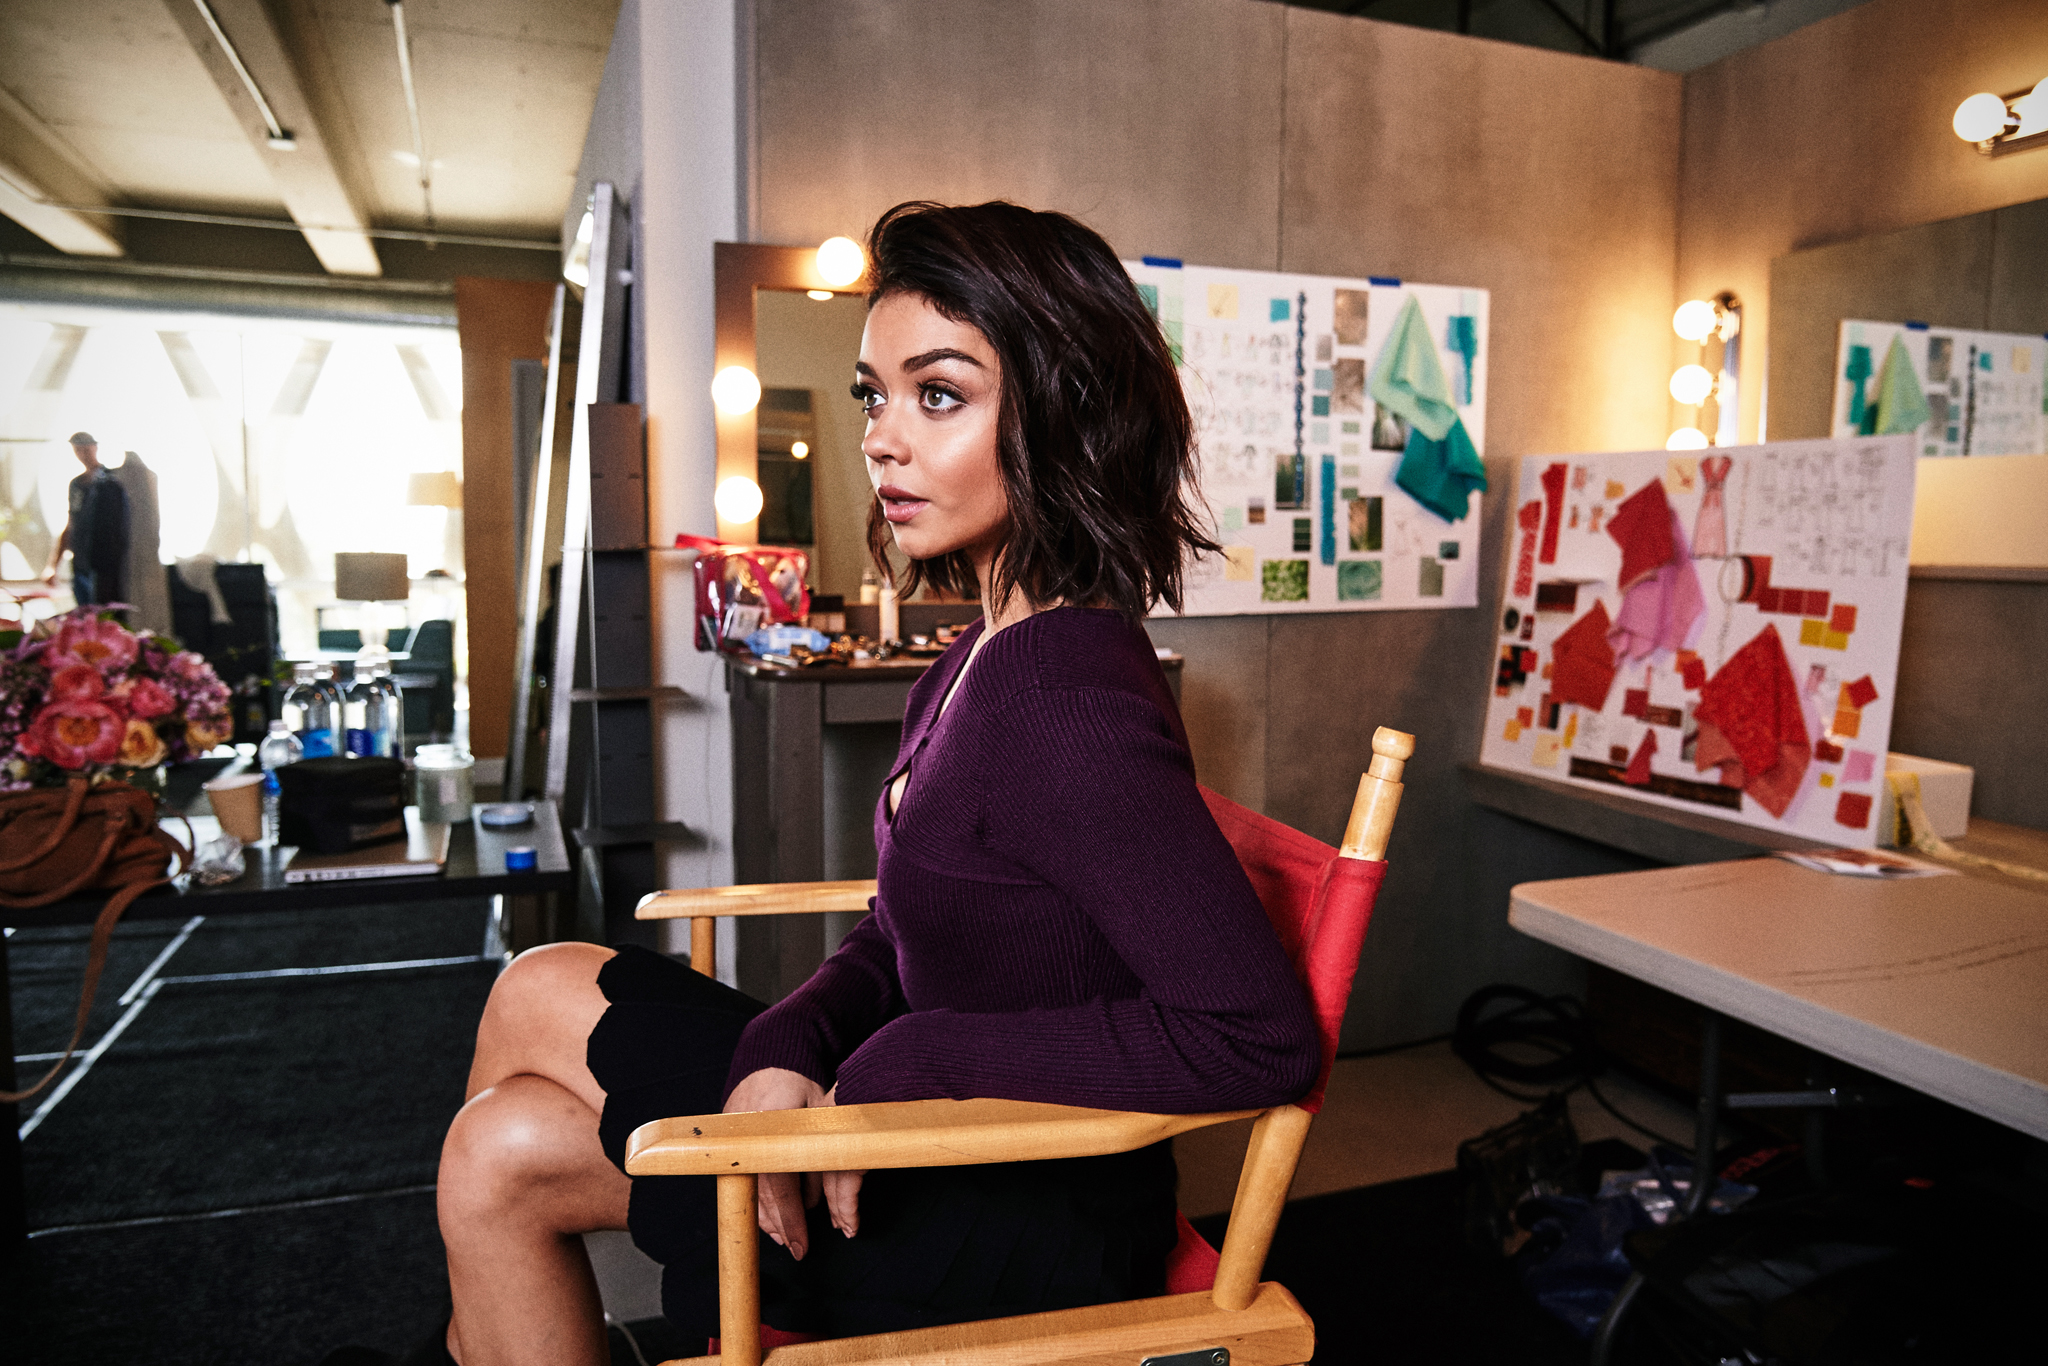 Behind-the-scenes look at the Candie's campaign featuring Sarah Hyland.